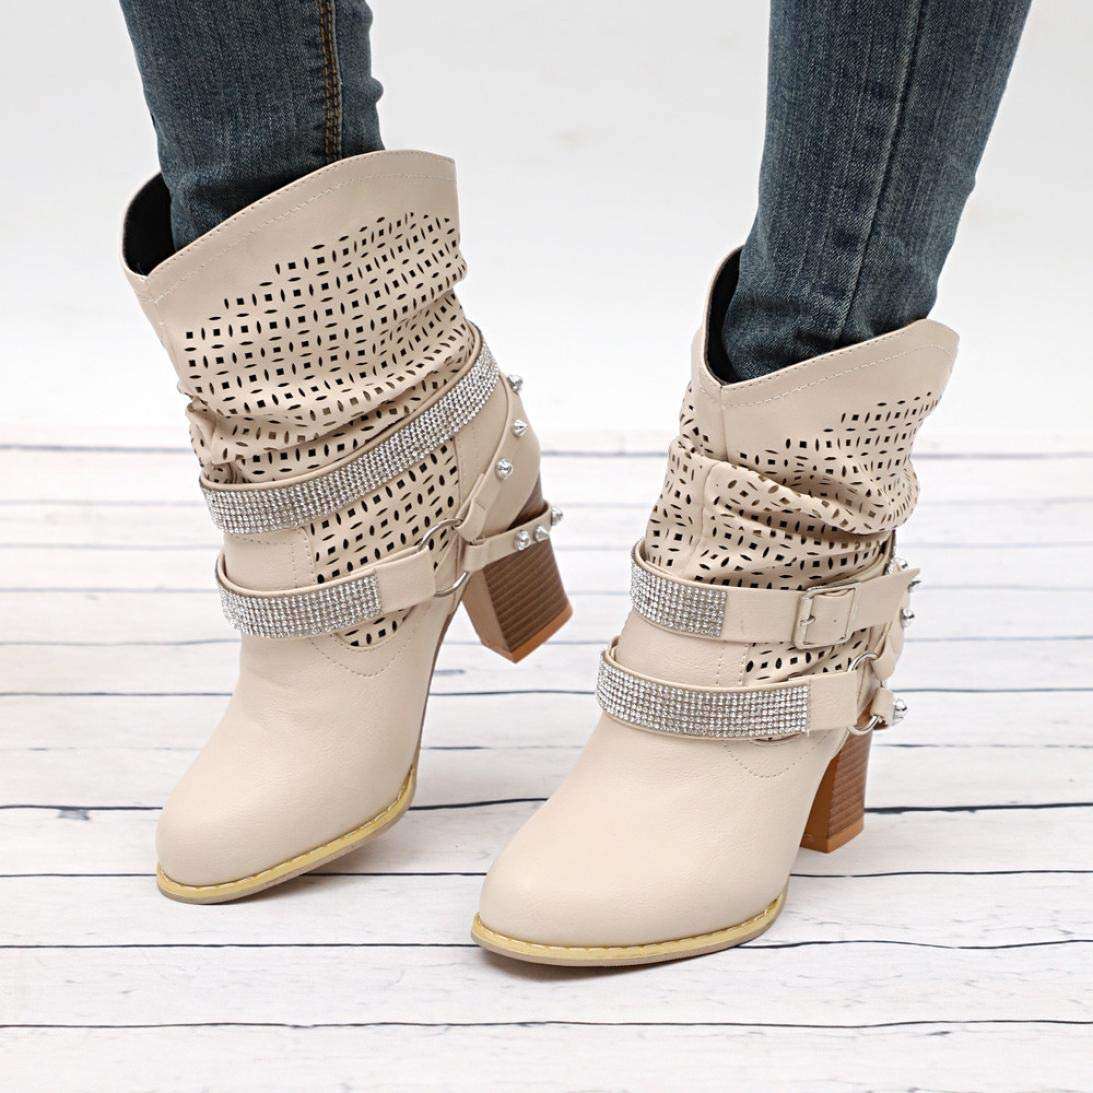 Creazrise Womens Winter Hollow Out Strap Buckle Boot Heel Rivet Mid Calf Boots